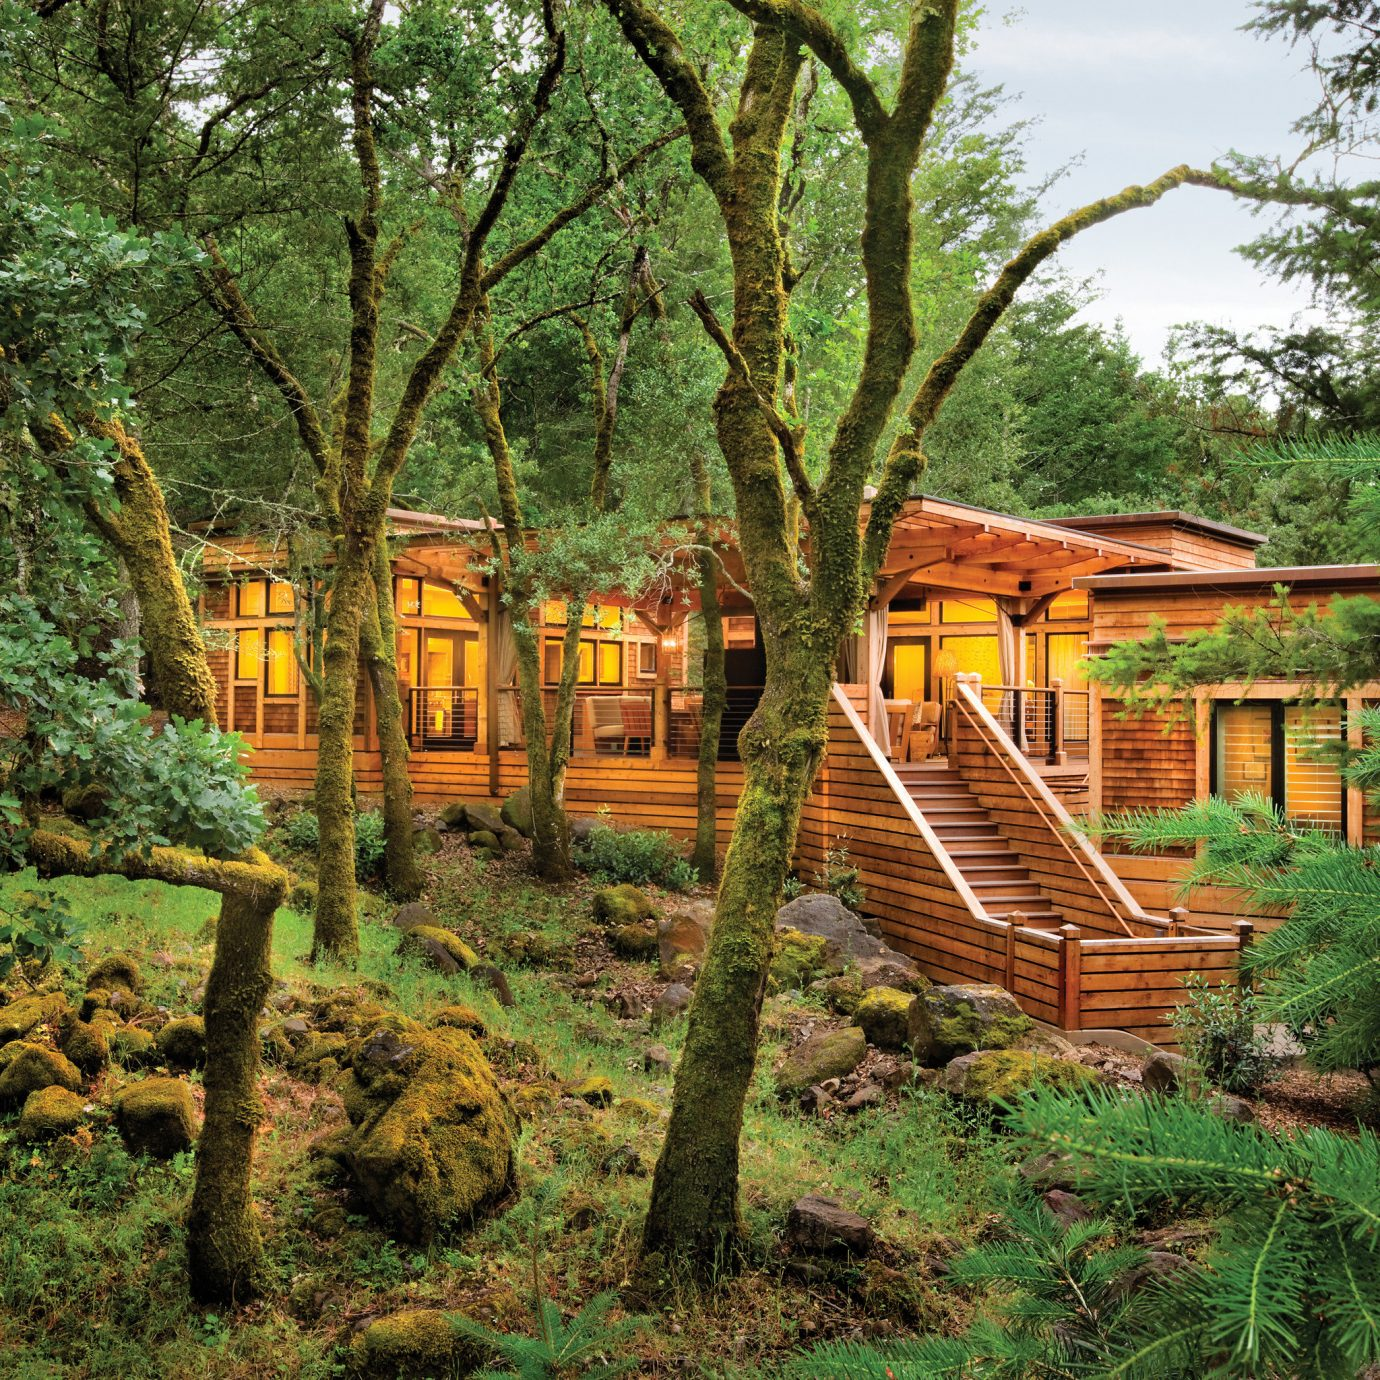 Eco Exterior Food + Drink Health + Wellness Hotels Luxury Outdoors Ranch Romance Romantic Rustic Spa Retreats Trip Ideas Wellness tree grass park Forest plant Jungle rural area log cabin woodland hut Garden outdoor structure rainforest lush wooded surrounded shade